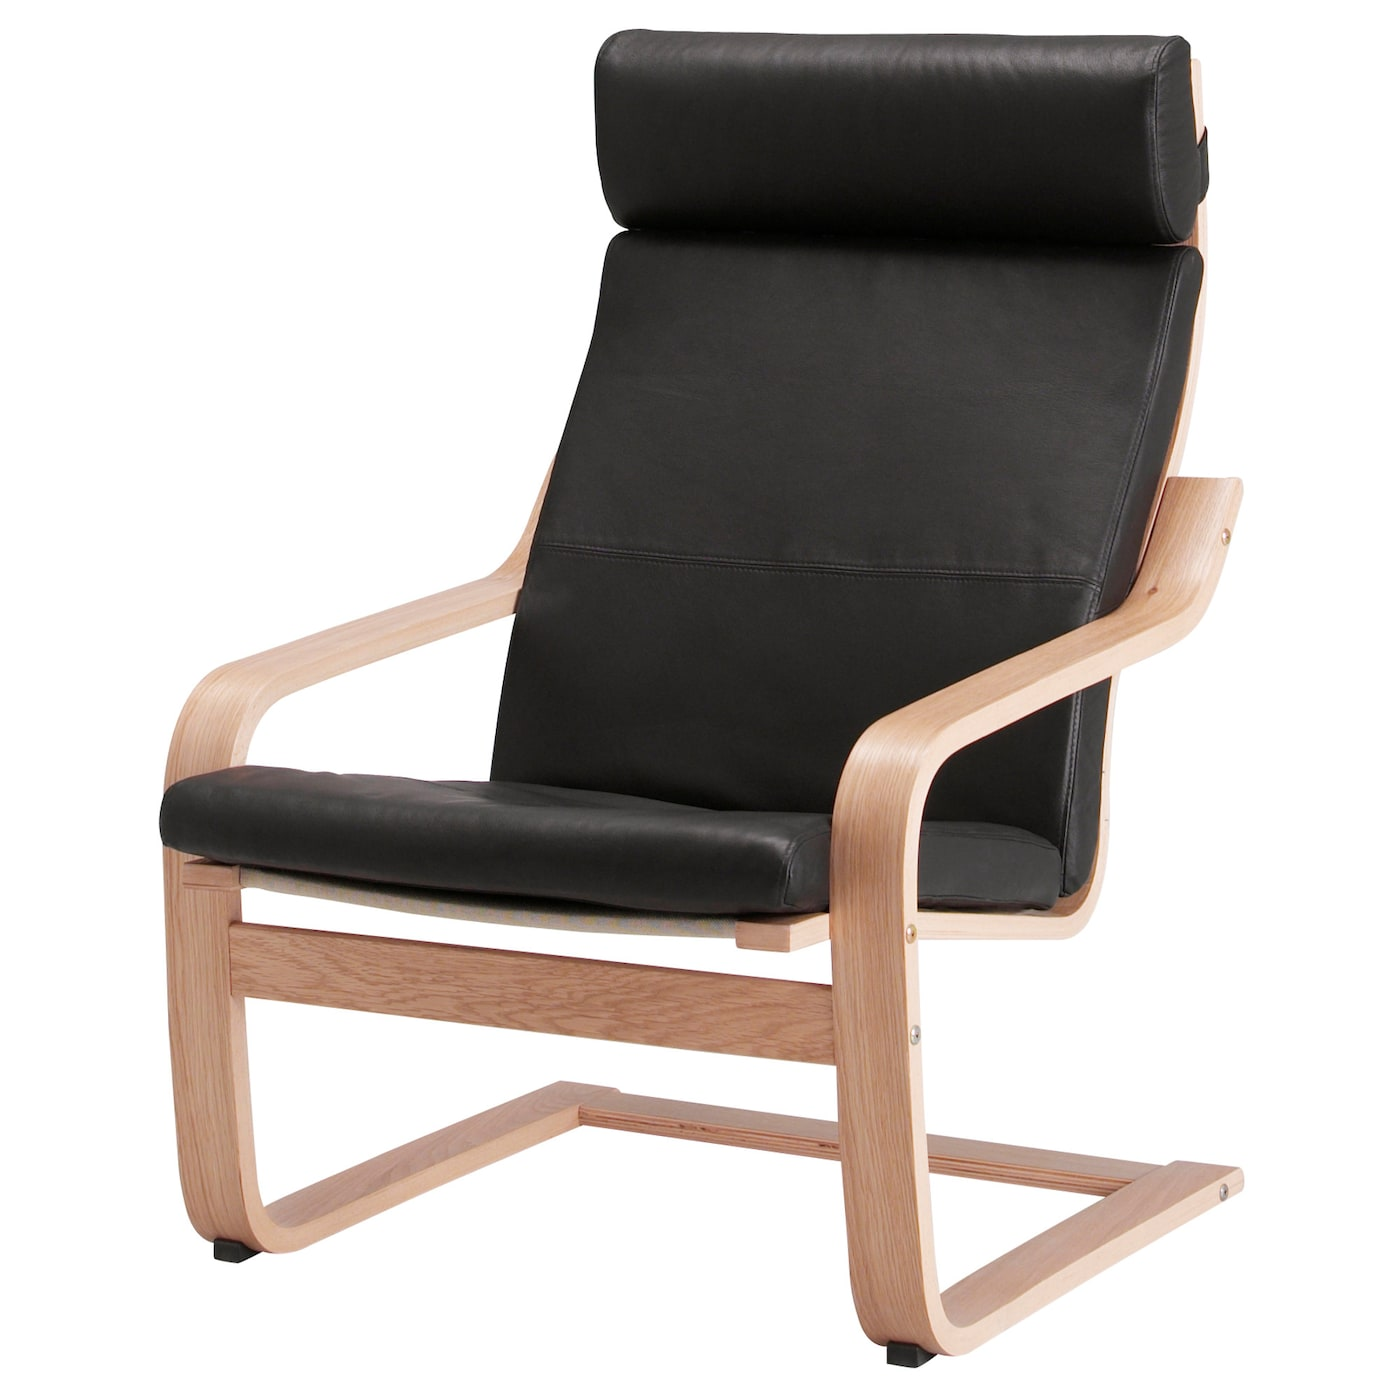 recliner that ensures chair curved comfortably products vindals stained the benches outdoor loungers art ikea chairs white you en brown reclining stools sit ie back